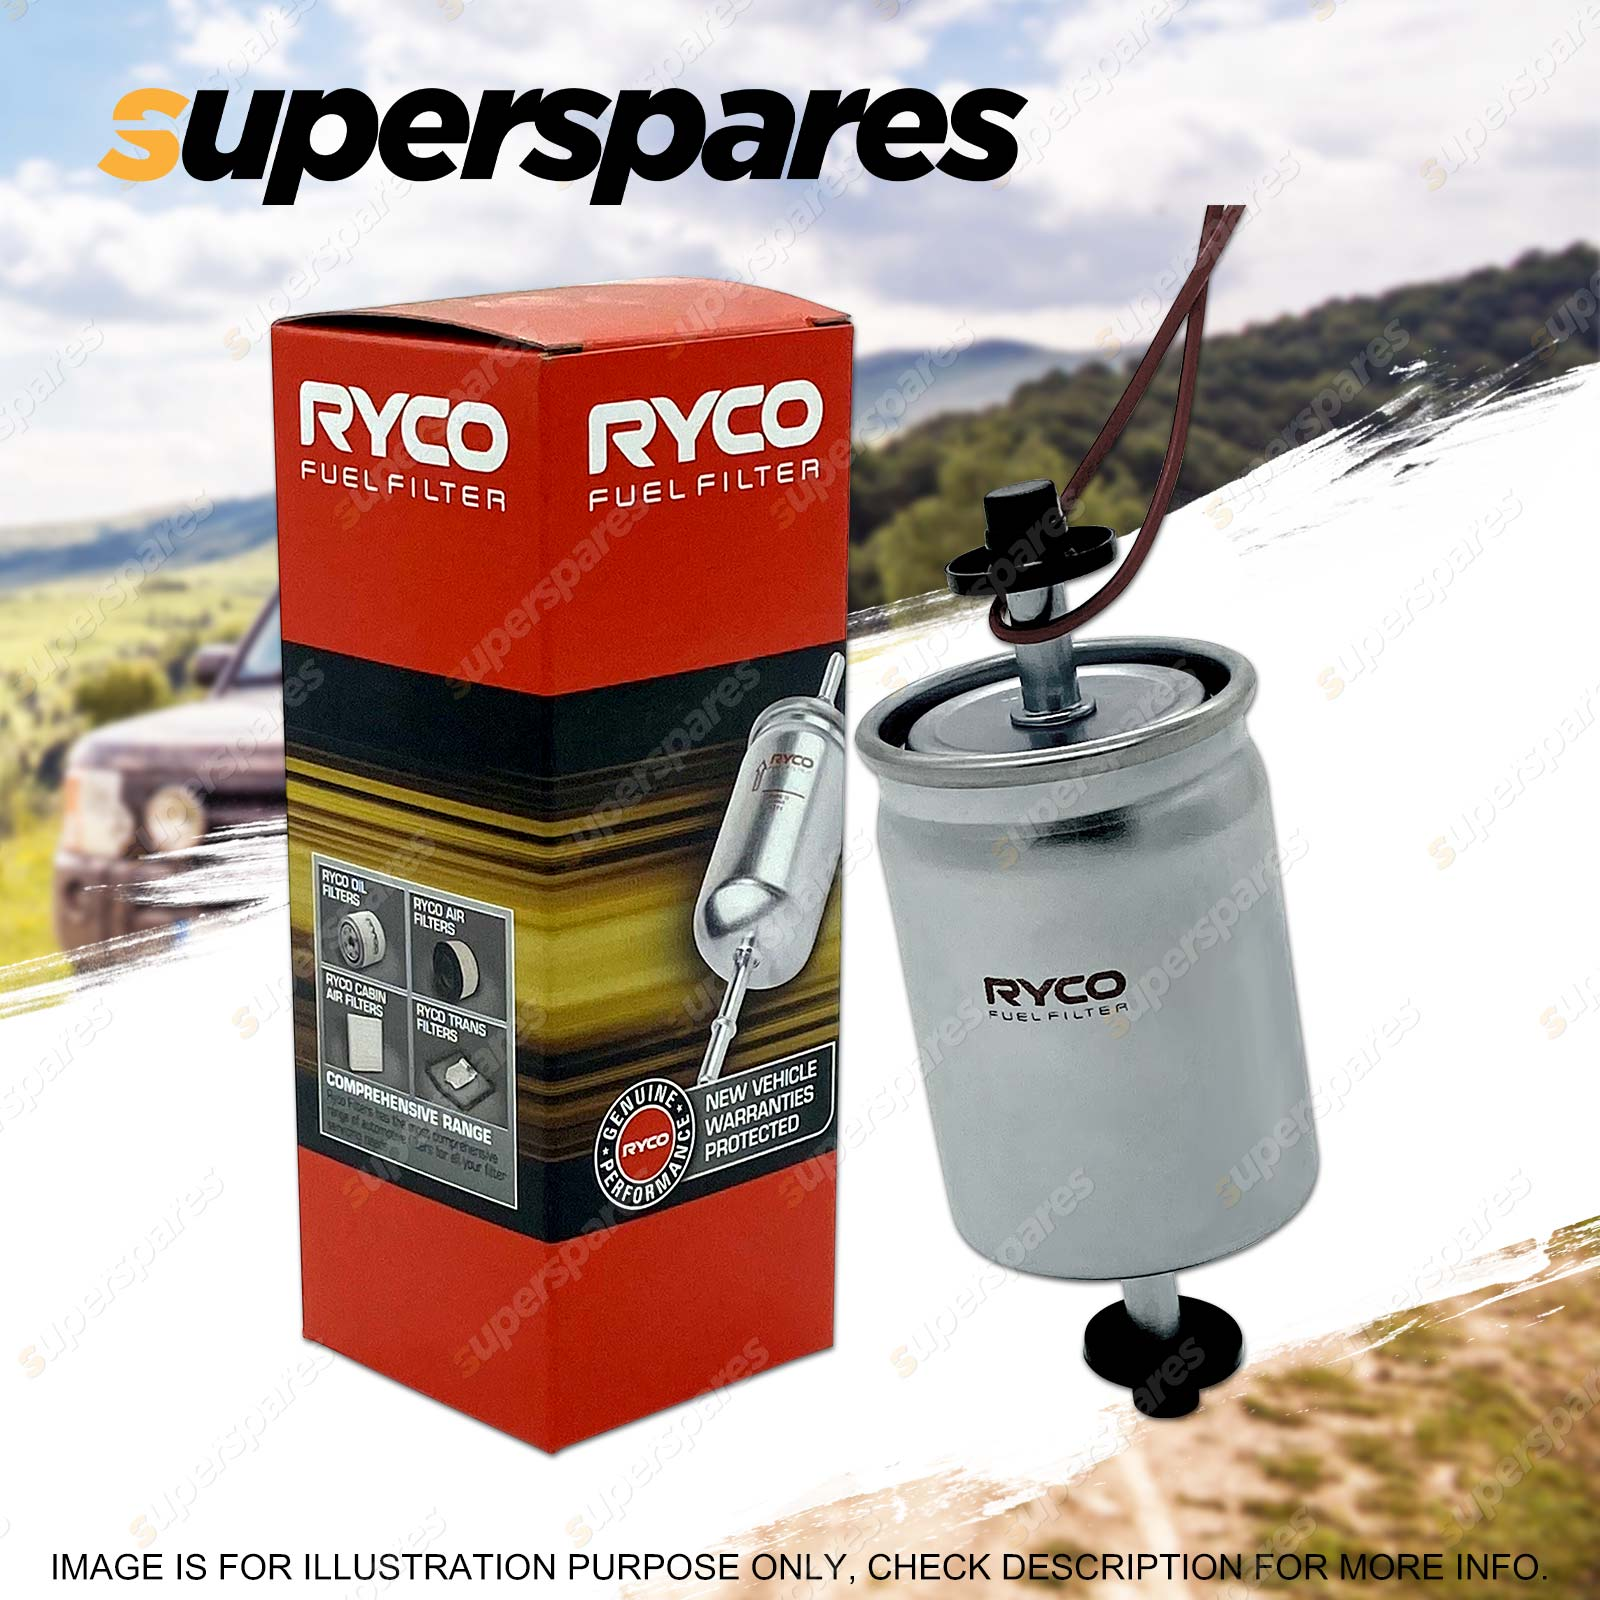 hight resolution of ryco fuel filter for toyota rav 4 aca38r asa44r zsa42r aca33 gsa33ryco fuel filter for toyota